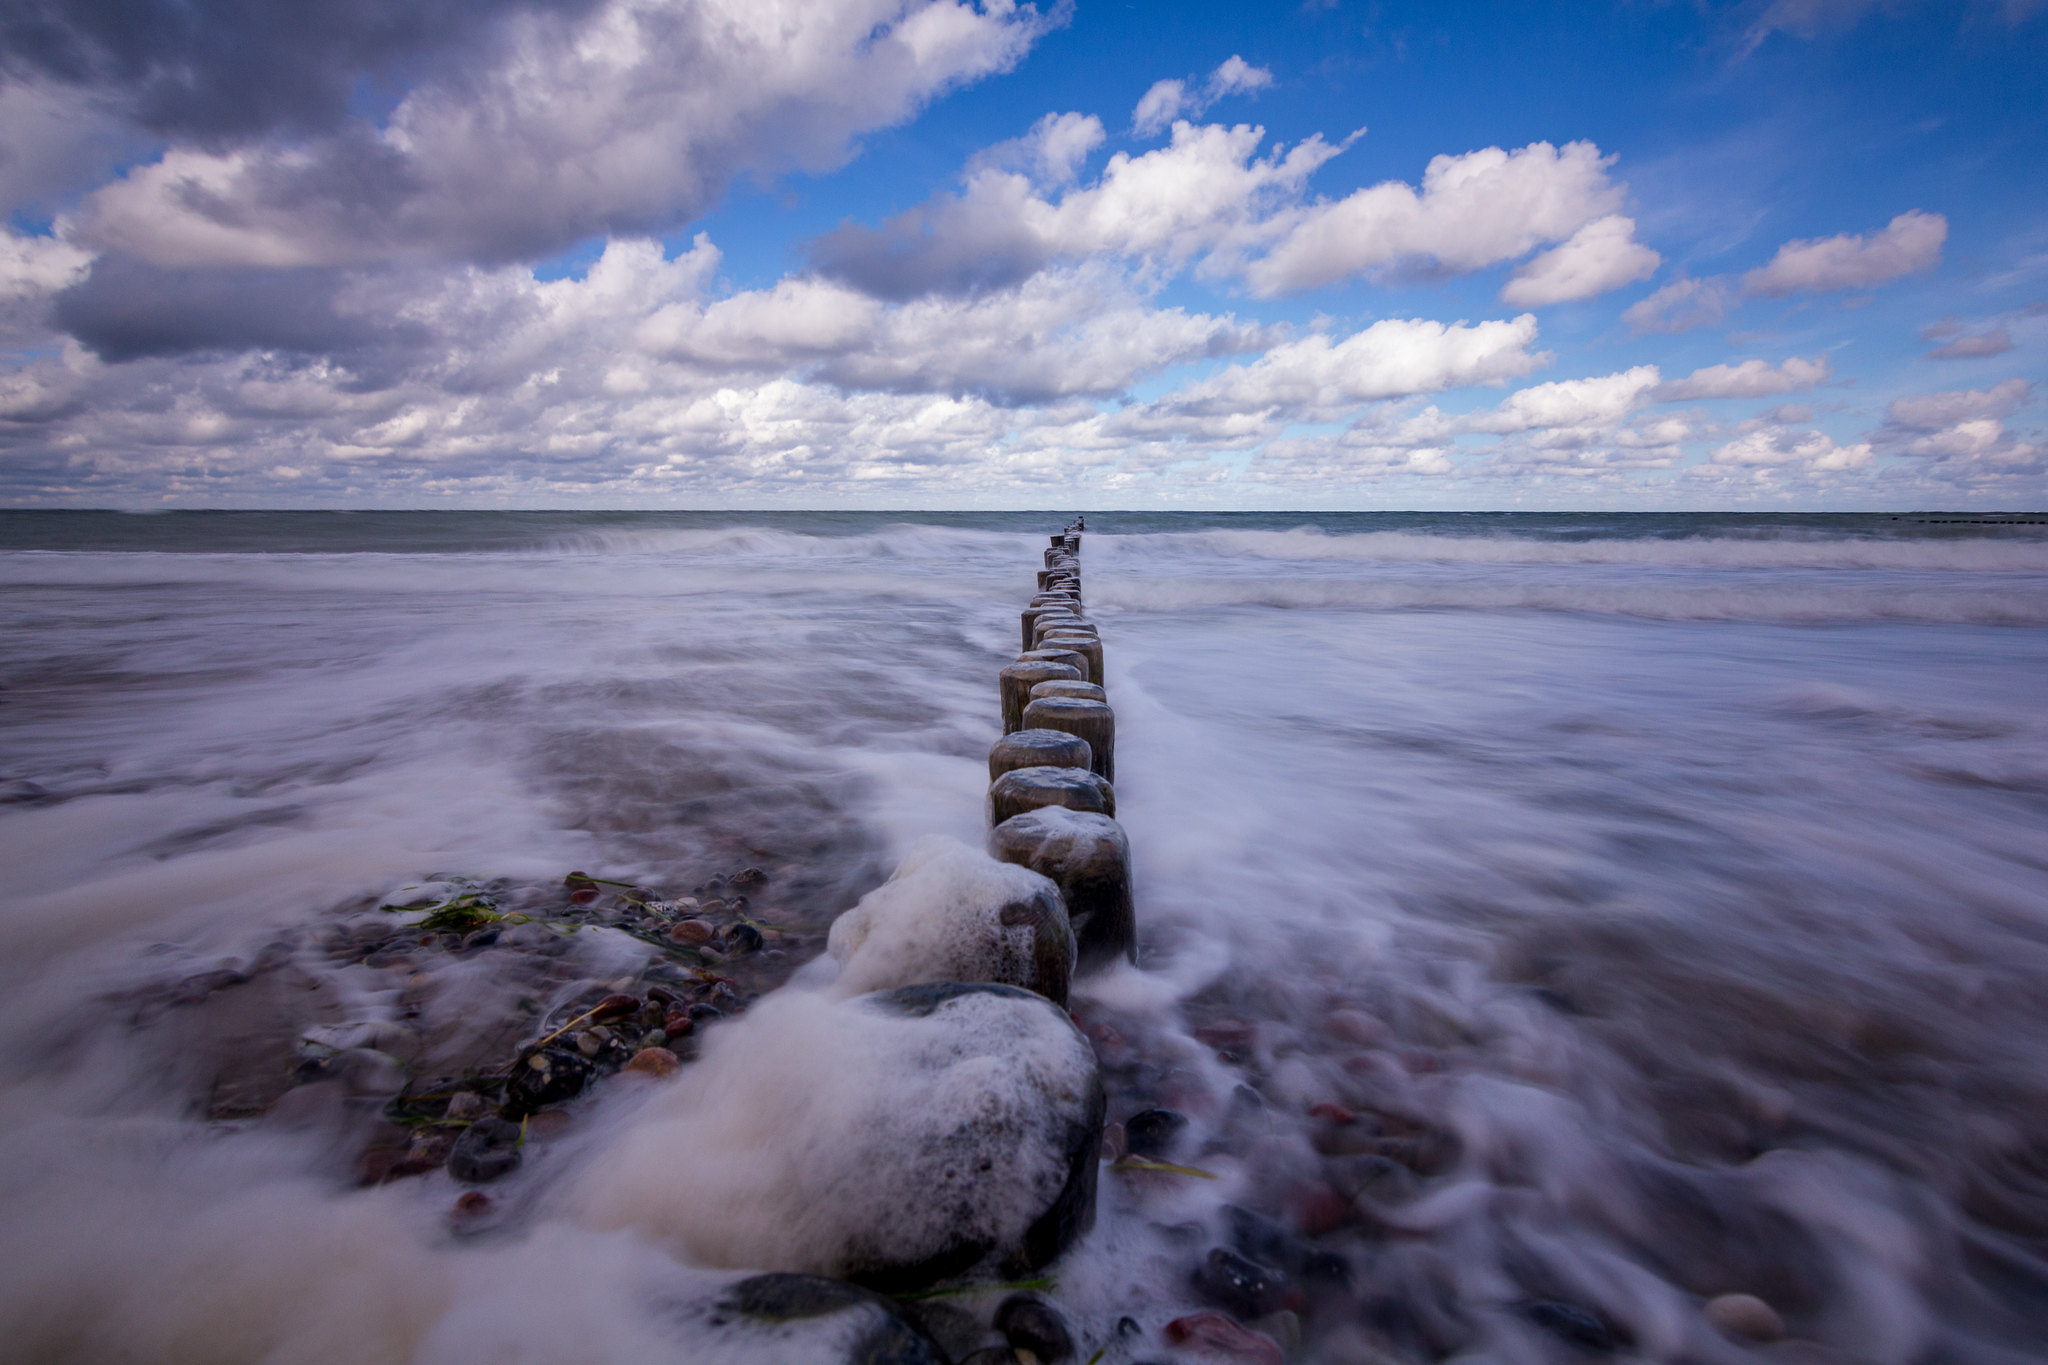 Breakwater and a wave